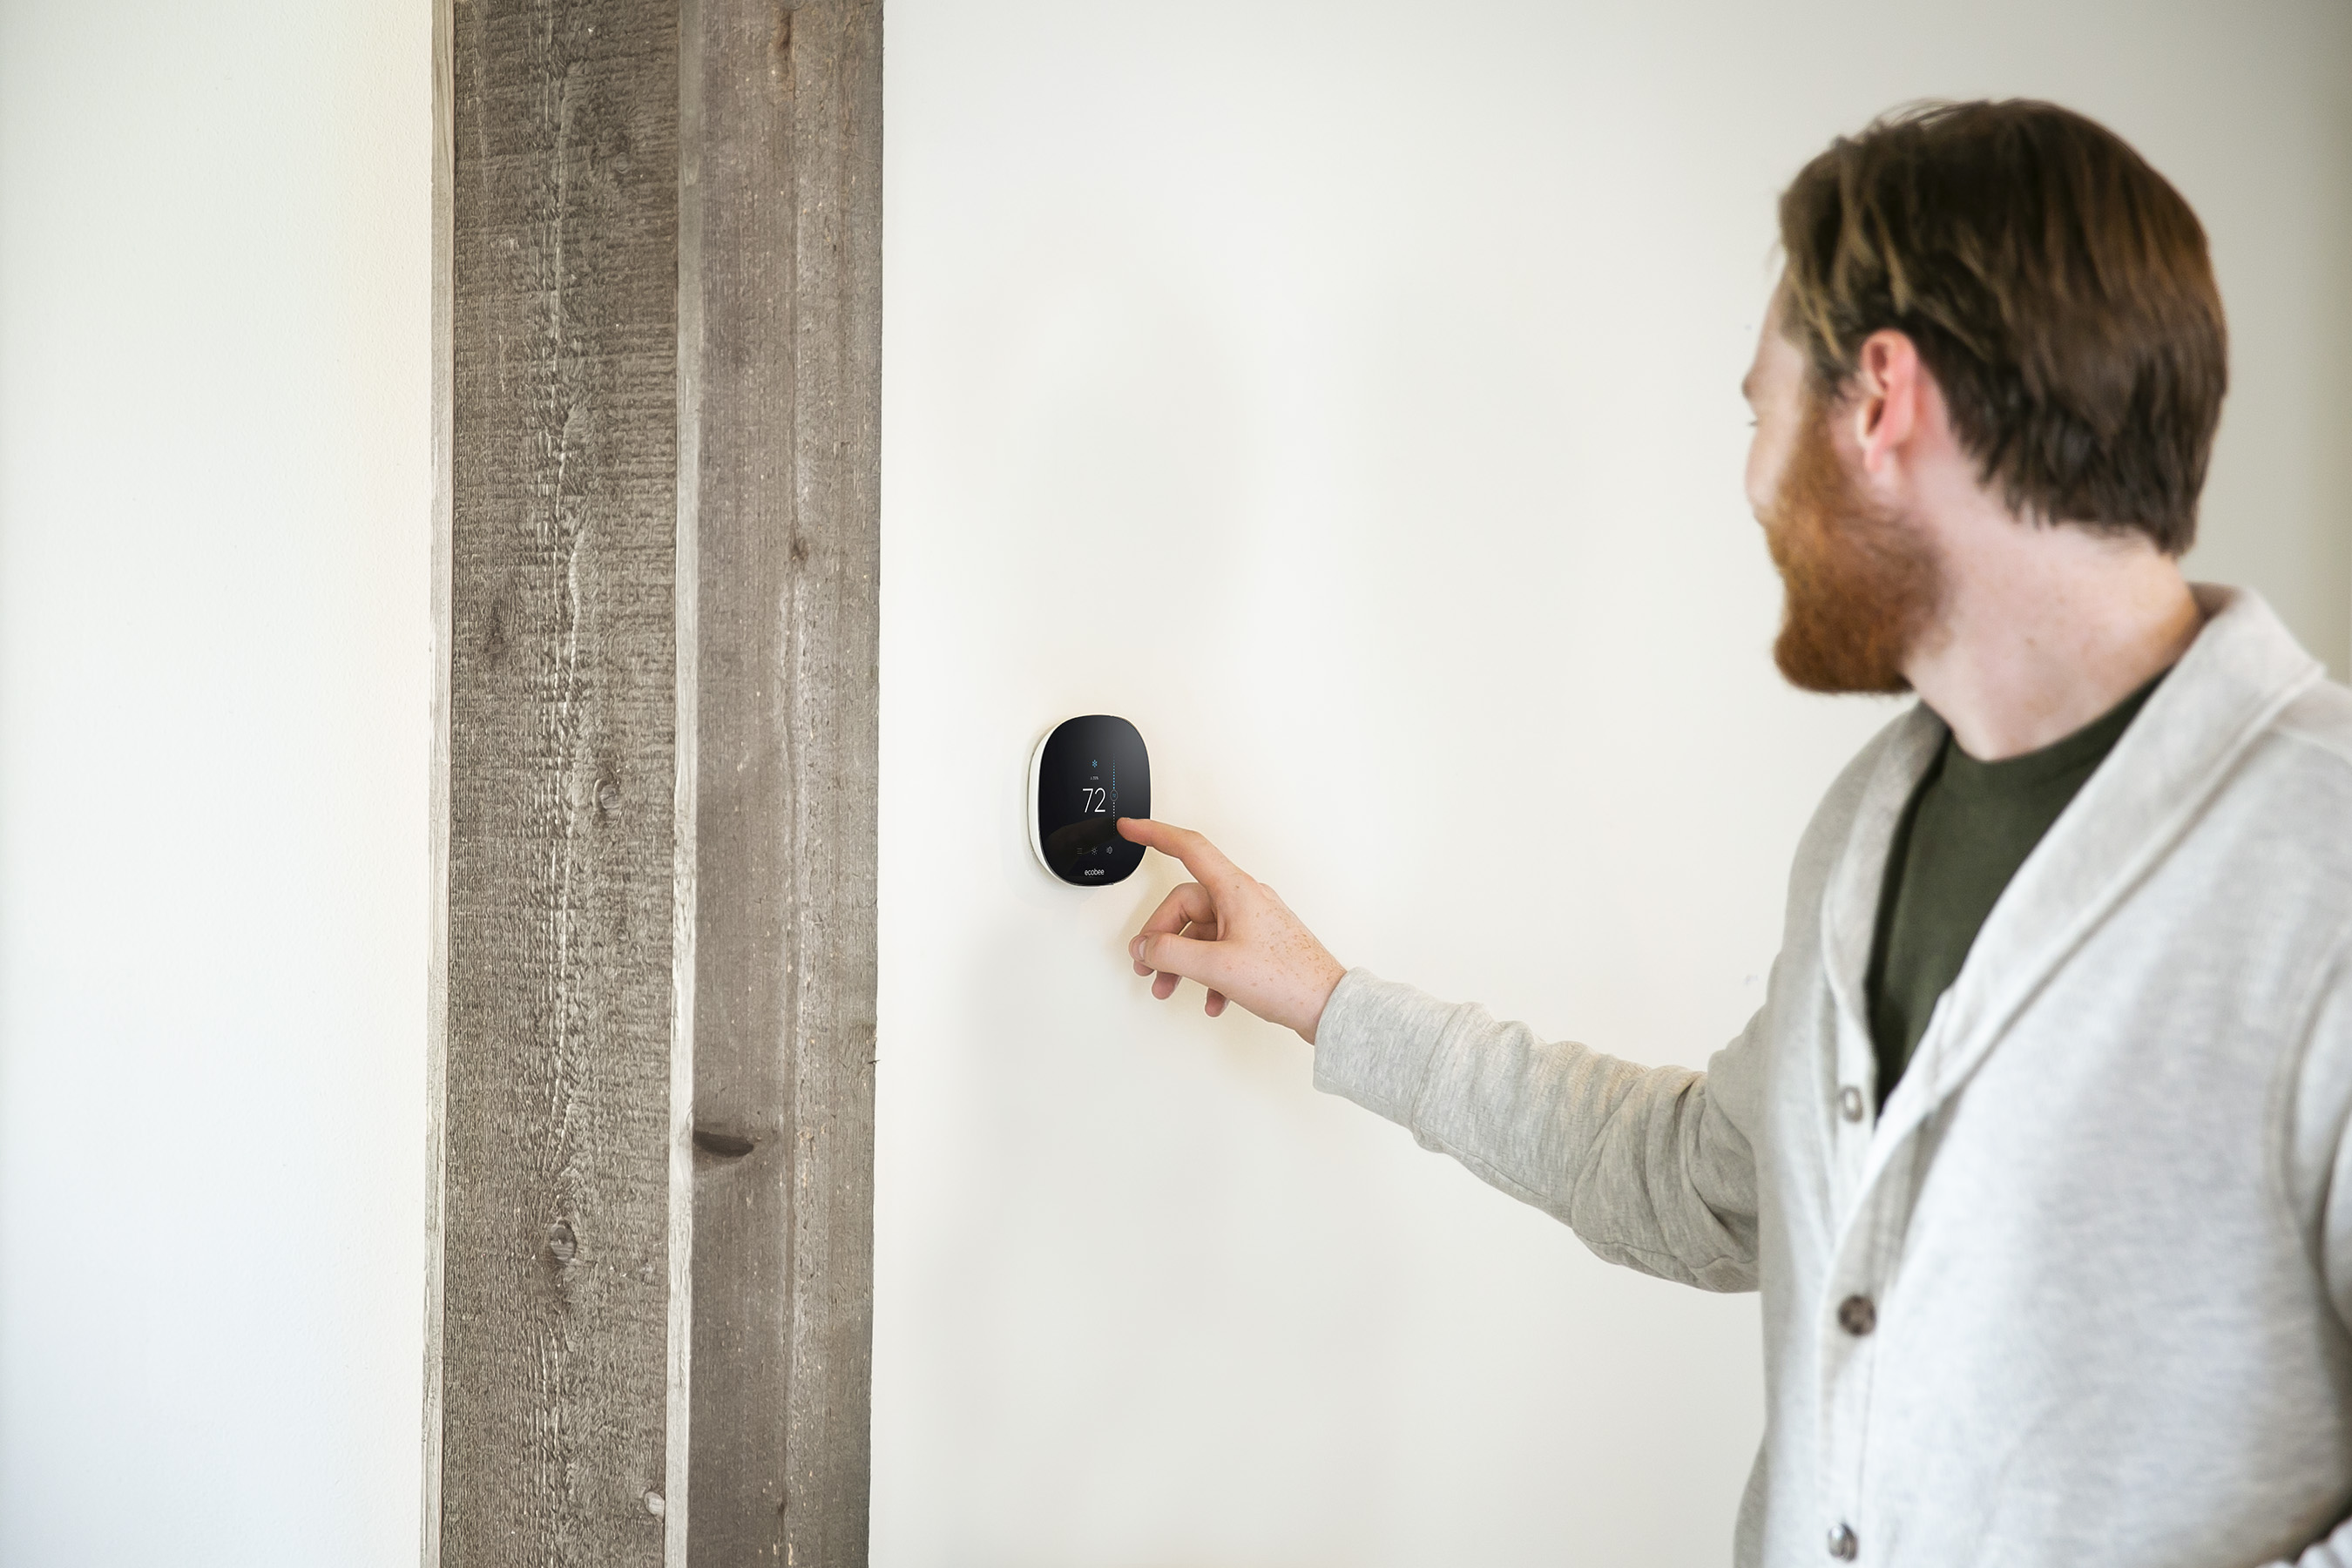 All Clayton Built® homes will come standard with an ecobee3 lite smart thermostat. ecobee4 will be available in select areas as an upgrade.